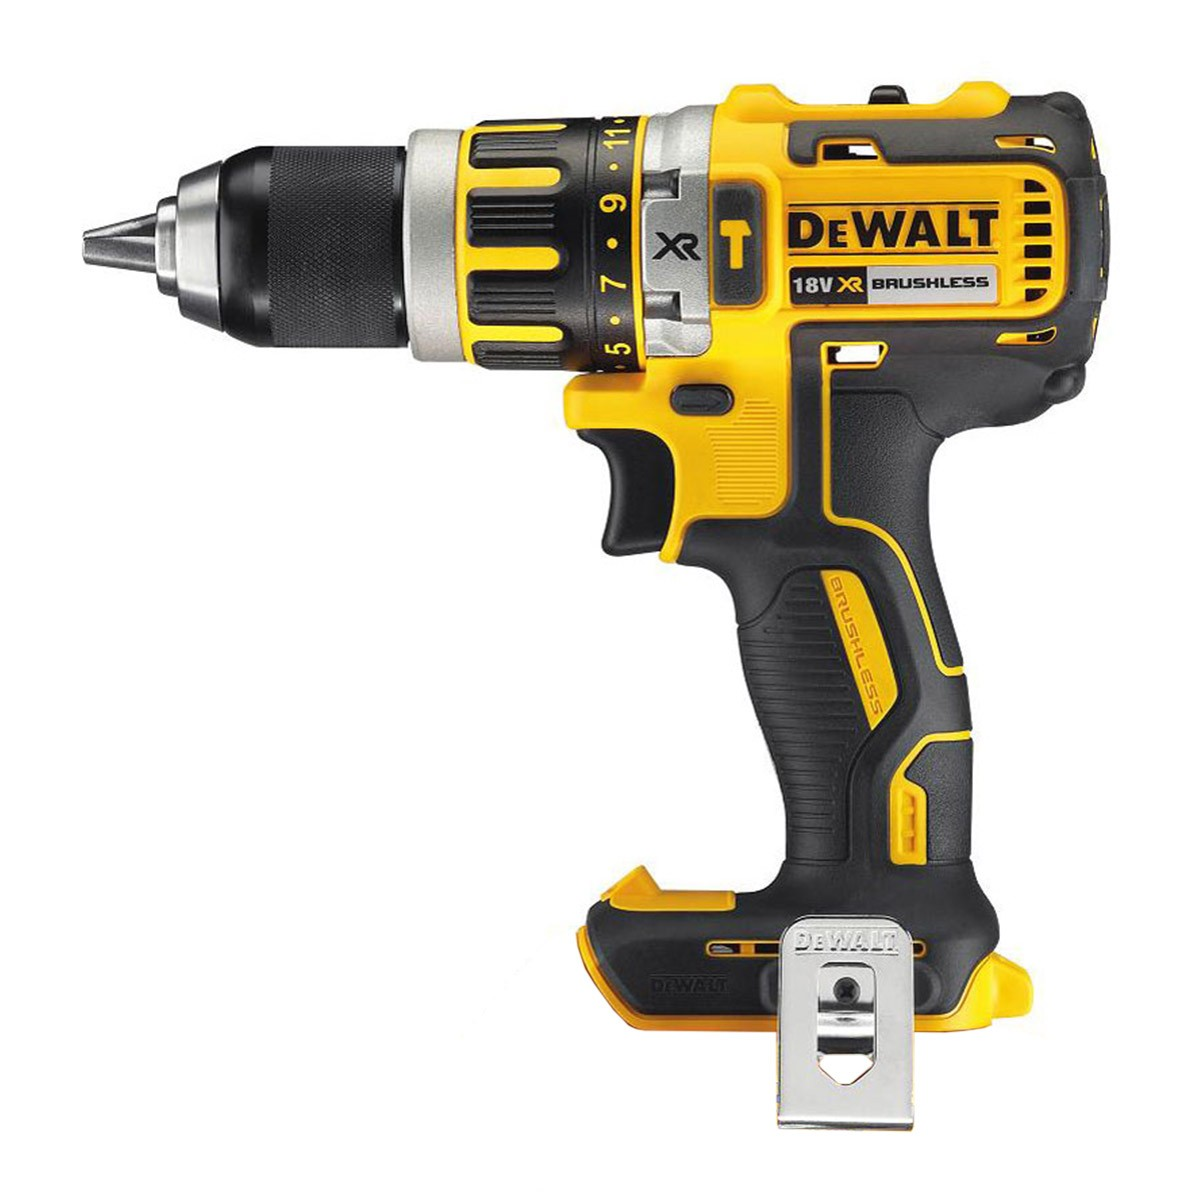 Dewalt Dust Extractor >> DeWalt DCD795N 18v XR Brushless Combi Drill Body Only | Powertool World